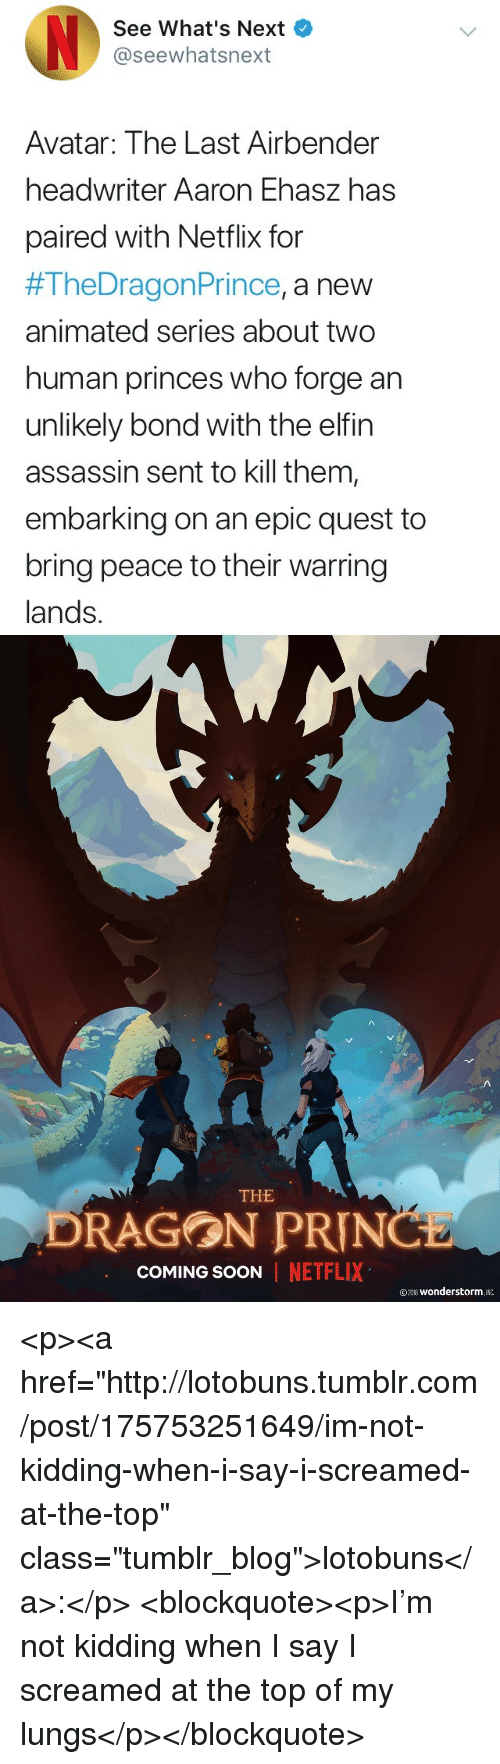 "Netflix, Prince, and Soon...: See What's Next  @seewhatsnext  Avatar: The Last Airbender  headwriter Aaron Ehasz has  paired with Netflix for  #TheDragon Prince, a new  animated series about two  human princes who forge an  unlikely bond with the elfin  assassin sent to kill them  embarking on an epic quest to  bring peace to their warring  lands.   THE  DRAGON PRIN  COMING SOON  NETFLIX  ©2018 wonderstorm. INC <p><a href=""http://lotobuns.tumblr.com/post/175753251649/im-not-kidding-when-i-say-i-screamed-at-the-top"" class=""tumblr_blog"">lotobuns</a>:</p> <blockquote><p>I'm not kidding when I say I screamed at the top of my lungs</p></blockquote>"